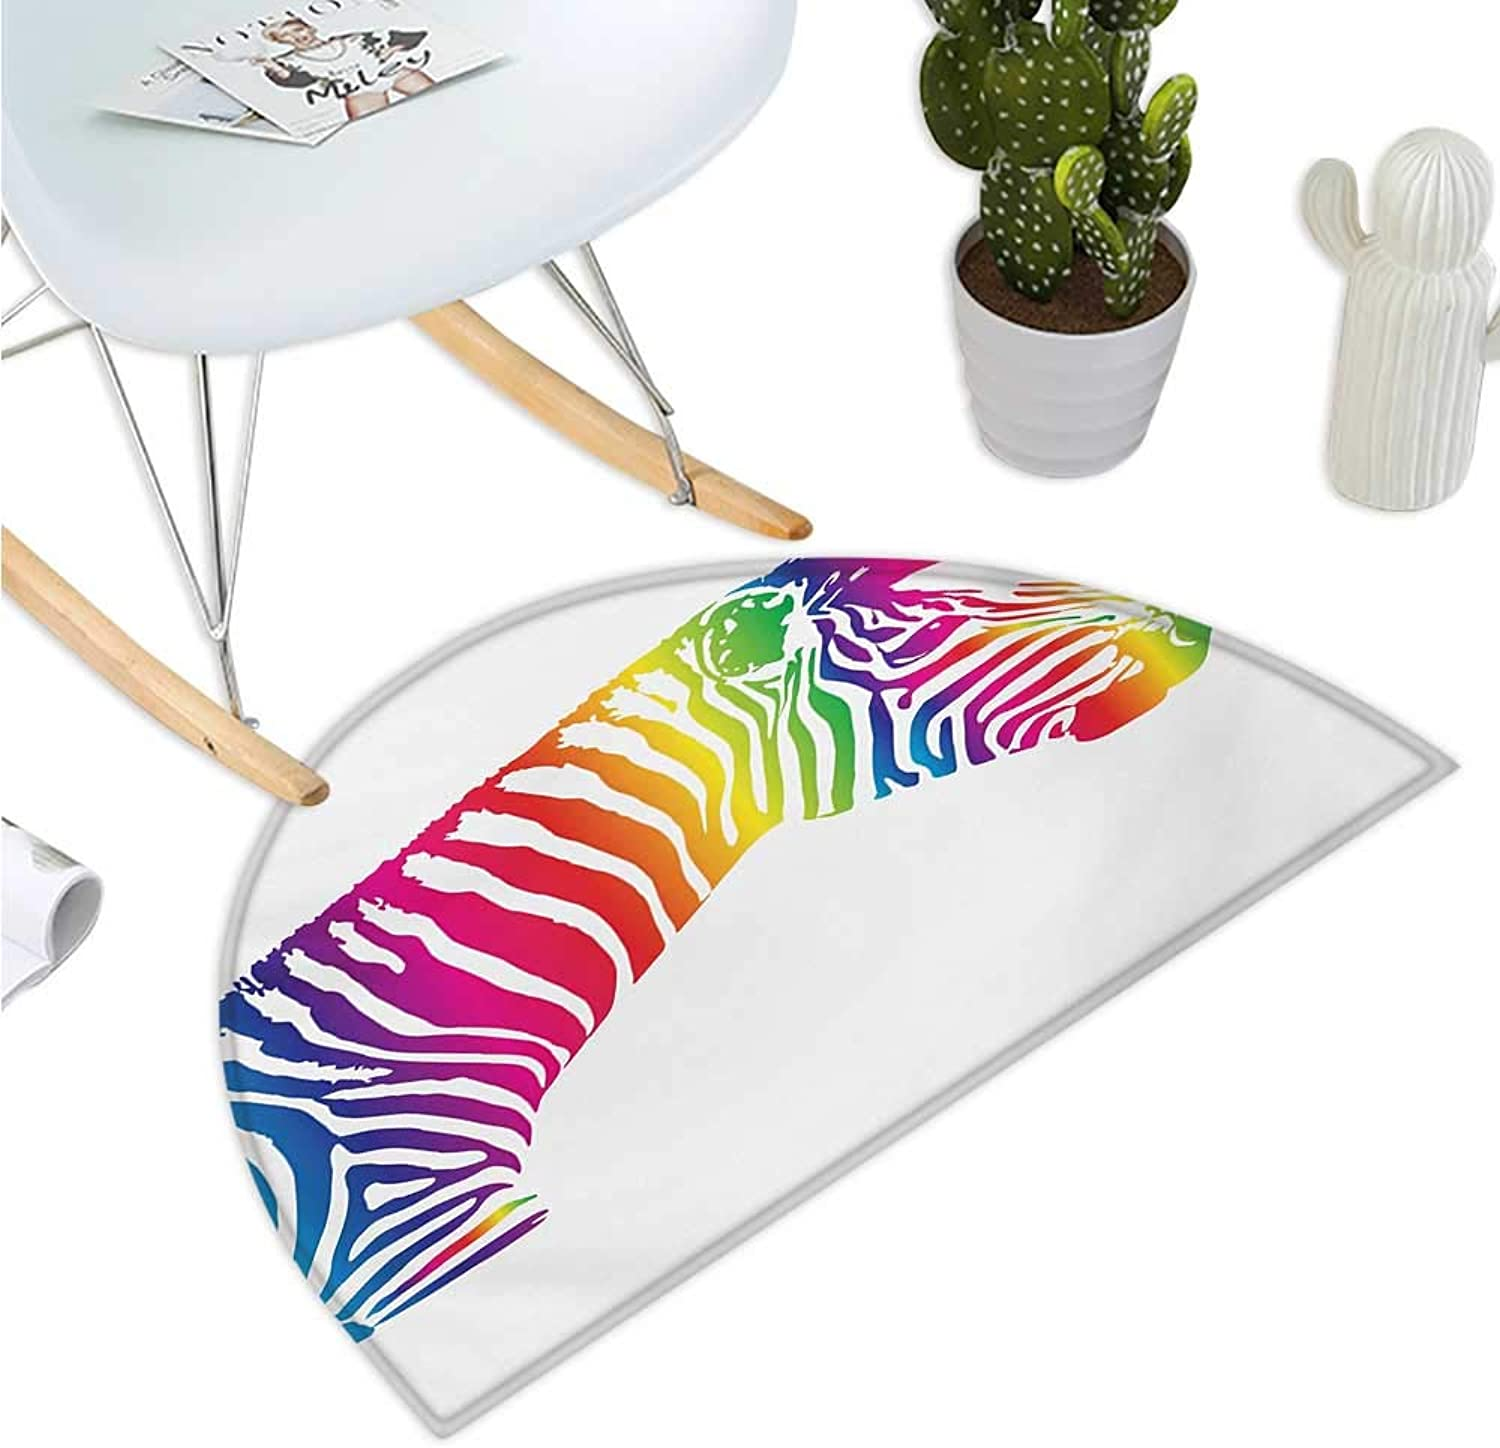 Safari Semicircular Cushion Zebra Portrait in Multicolord Stripes Zoo Animal Savannah Mammal with Vibrant Skin Entry Door Mat H 35.4  xD 53.1  Multicolor